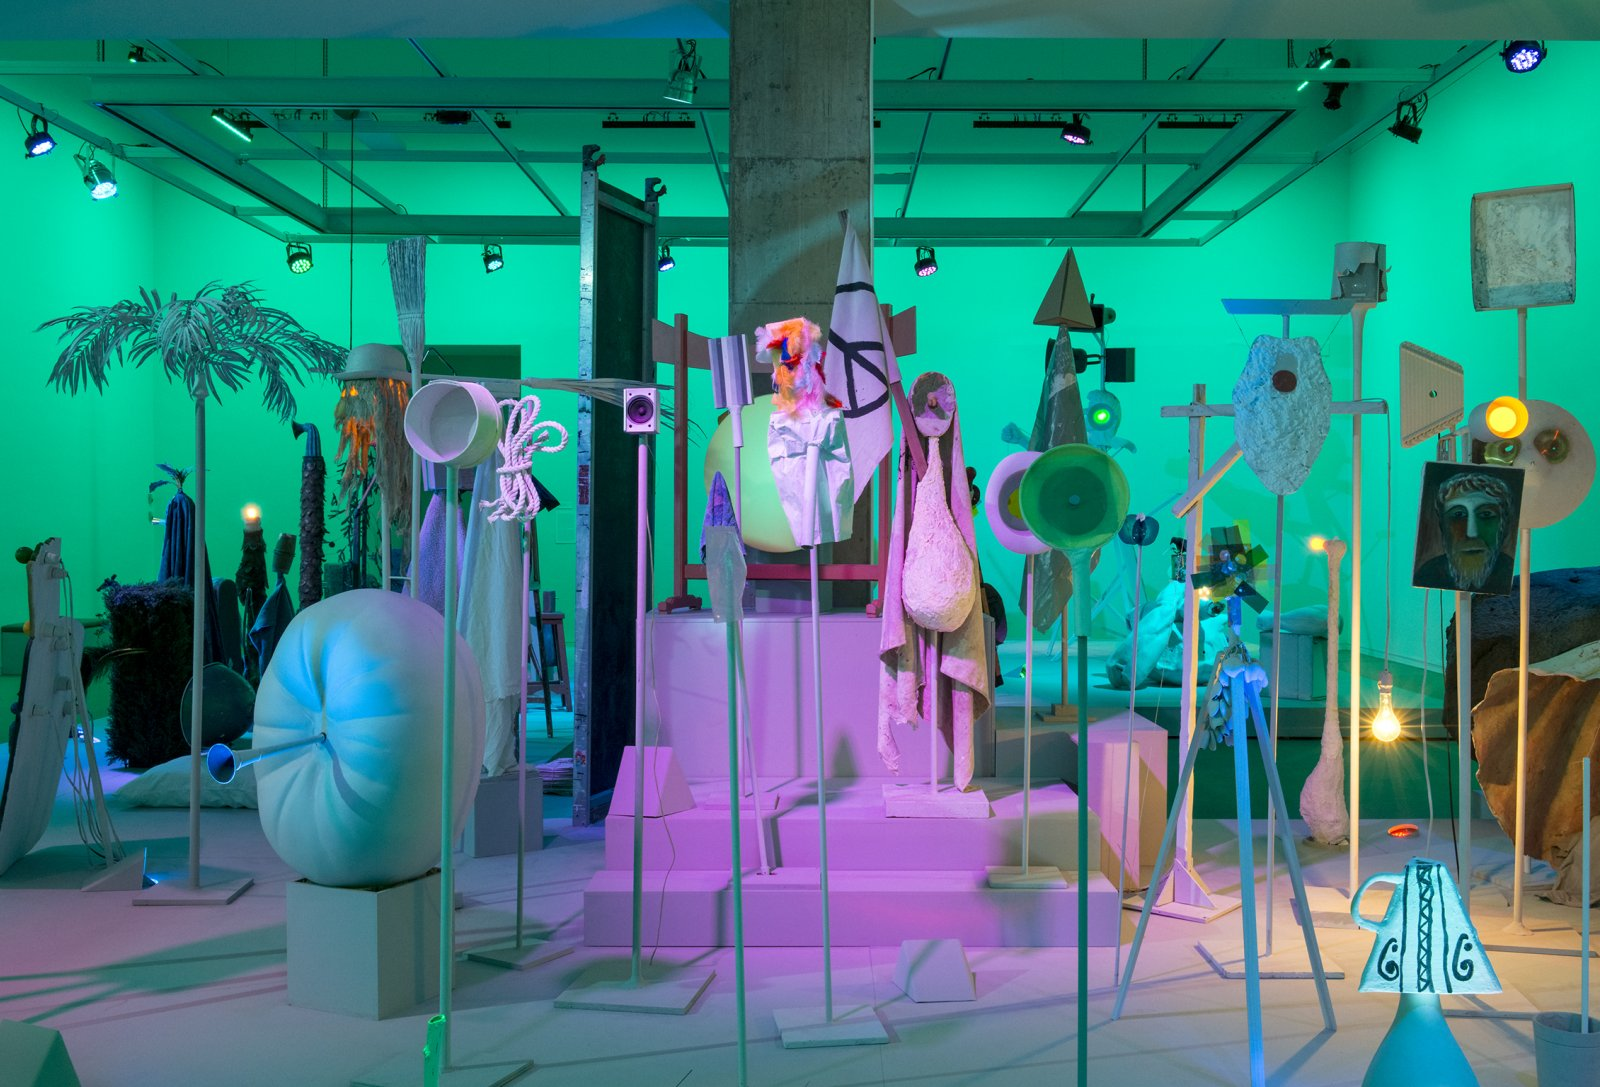 Geoffrey Farmer,Let's Make The Water Turn Black, 2013, a theatrical presentation of sculptural objects on a stage, with animatronics, audio and lighting directed by various computer programs, 289 x 360 x 90 in. (734 x 914 x 229 cm). Installation view, How Do I Fit This Ghost in My Mouth?, Vancouver Art Gallery, 2015